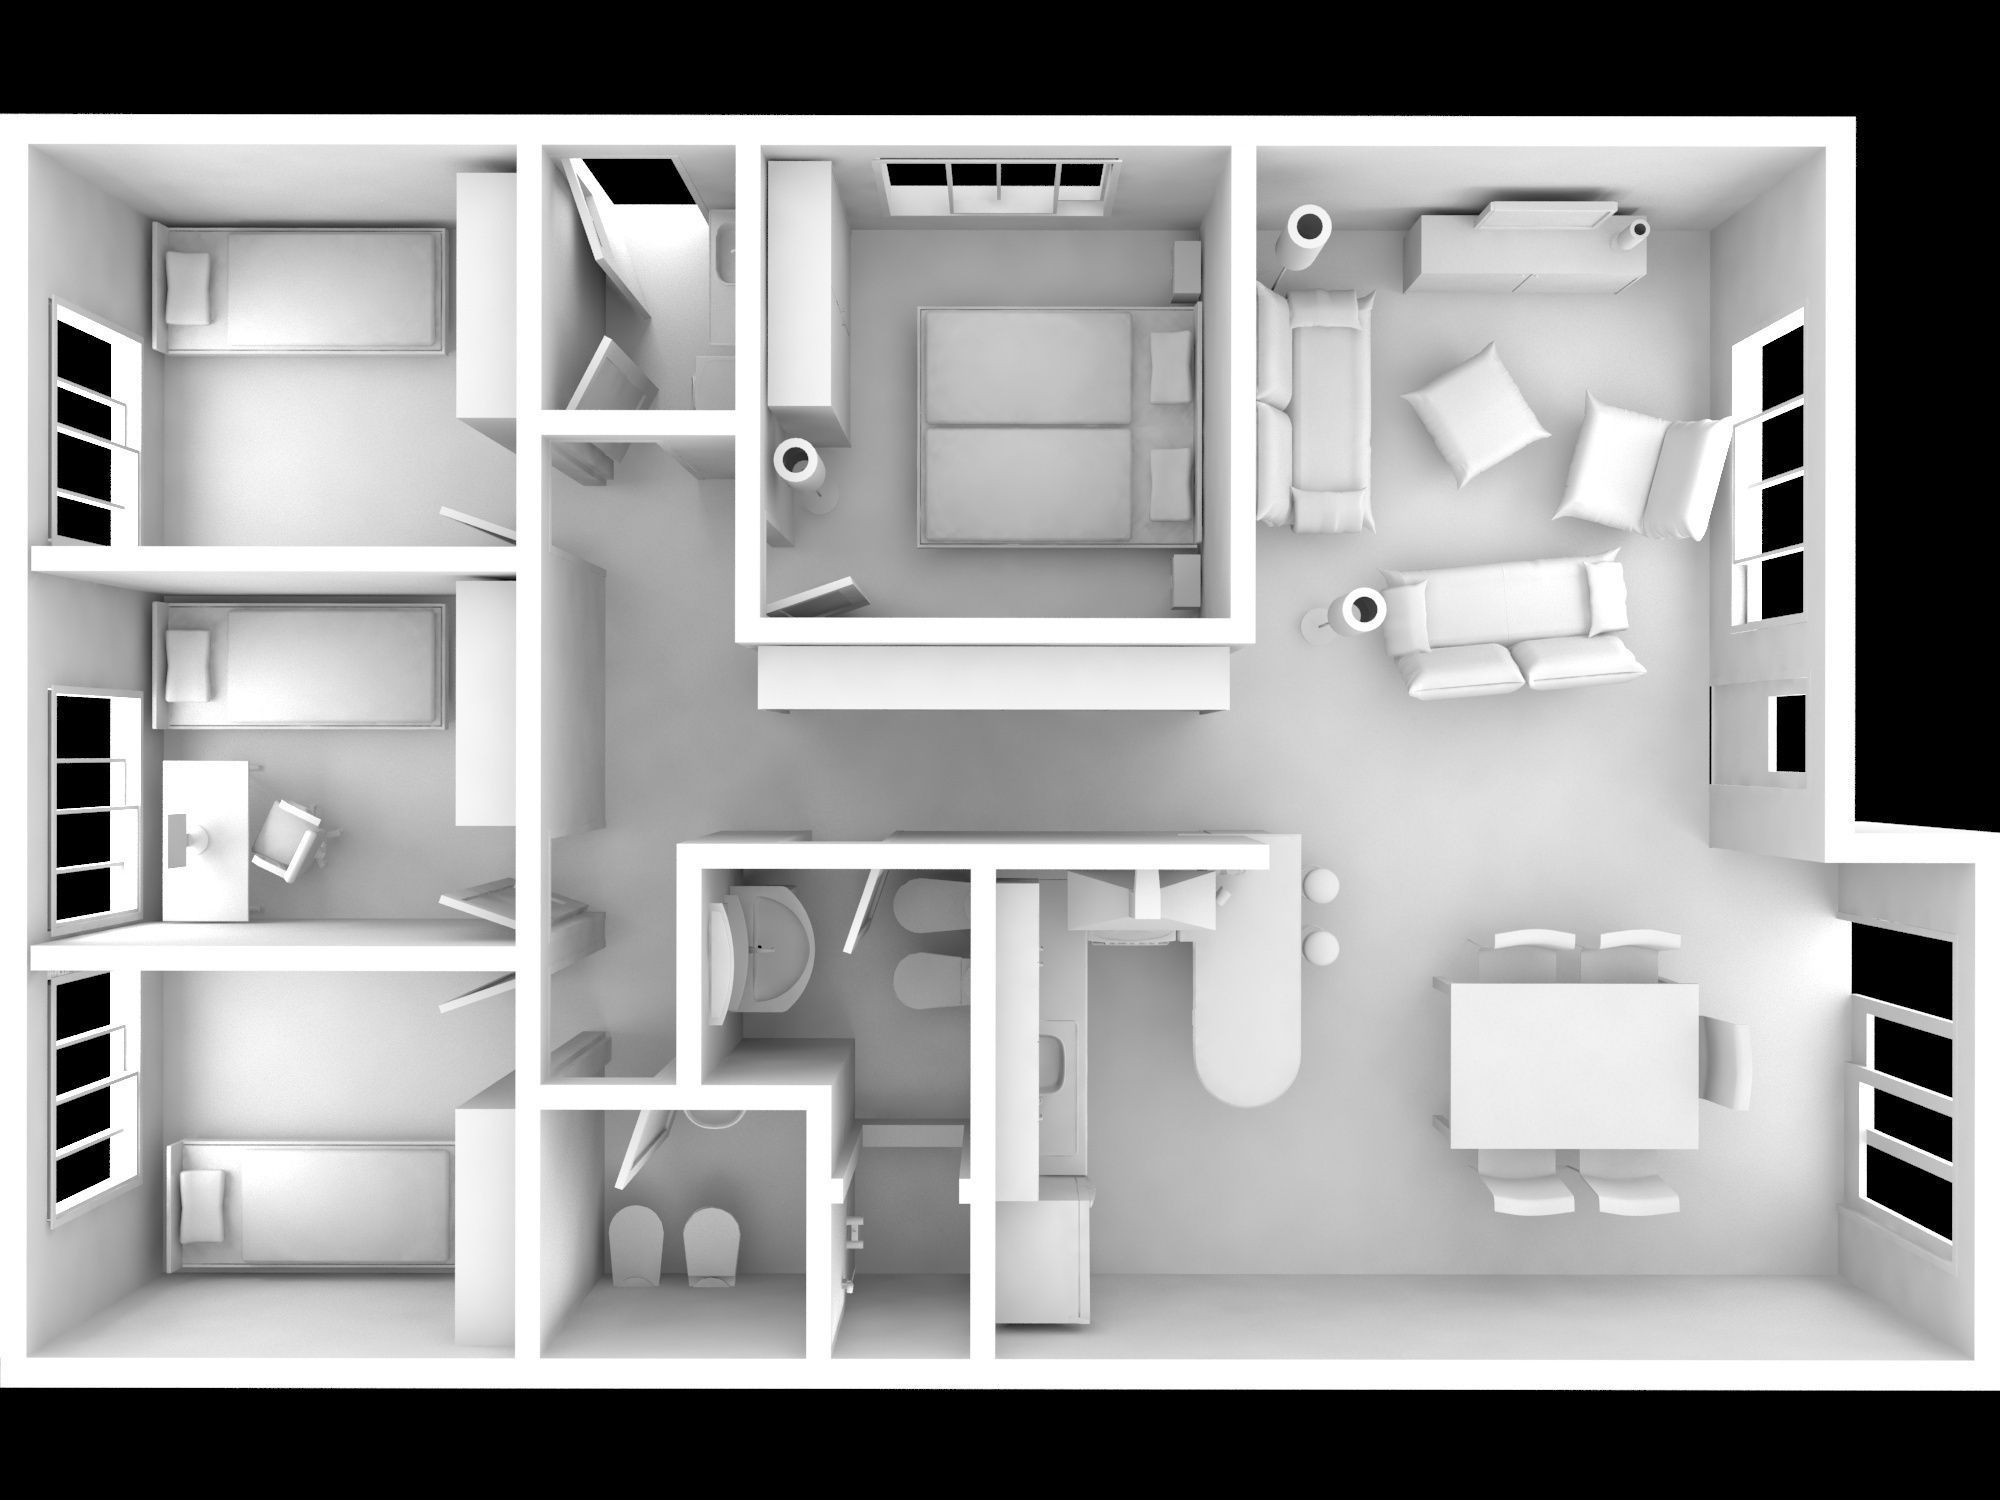 Interior House Full Modeled 3d Model Max 1 ...